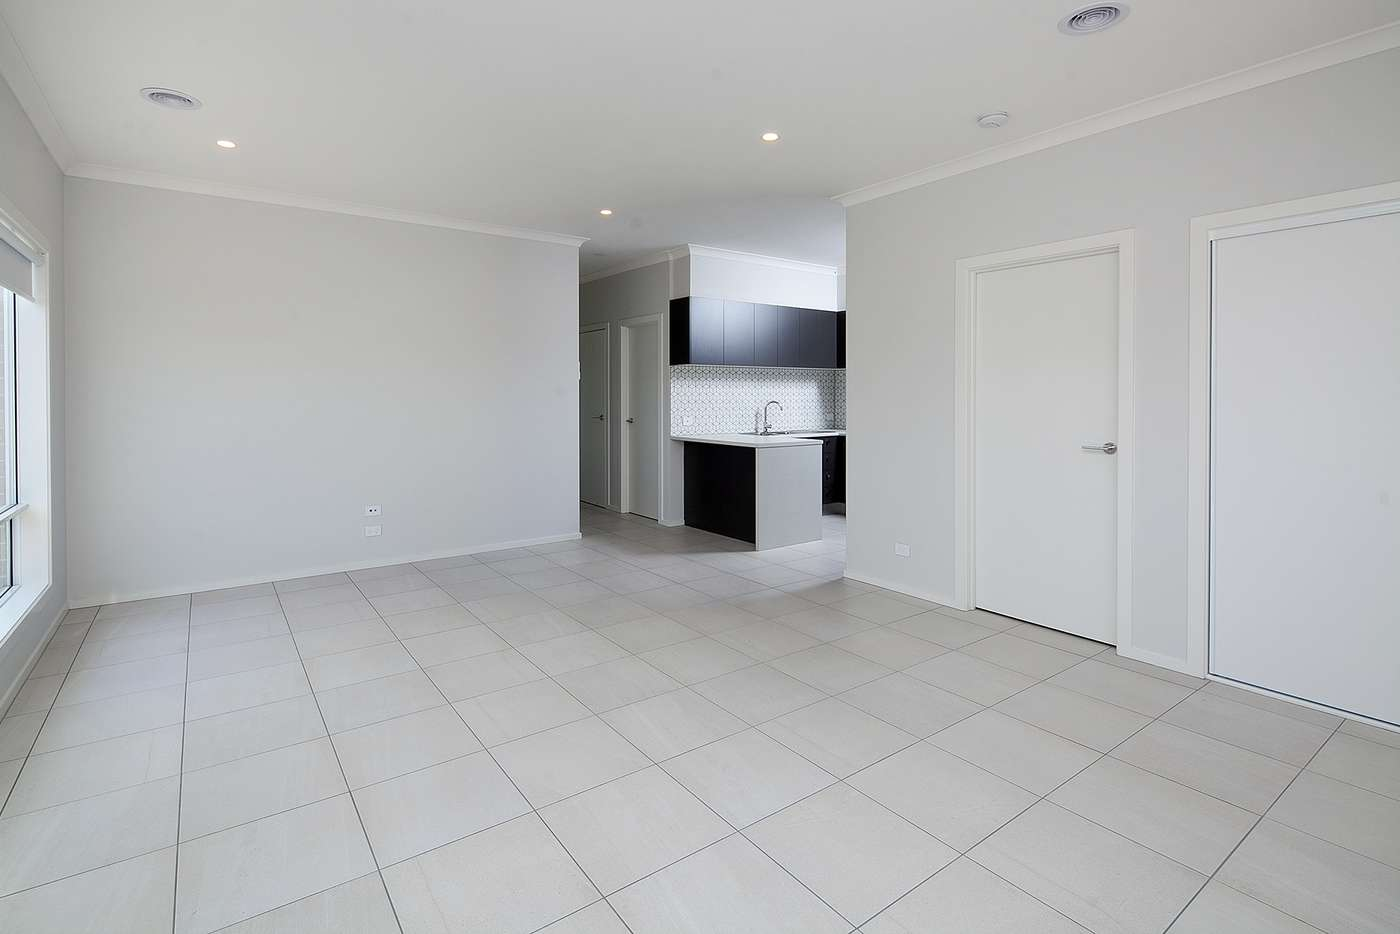 Sixth view of Homely house listing, 22 Salim Way, Clyde North VIC 3978